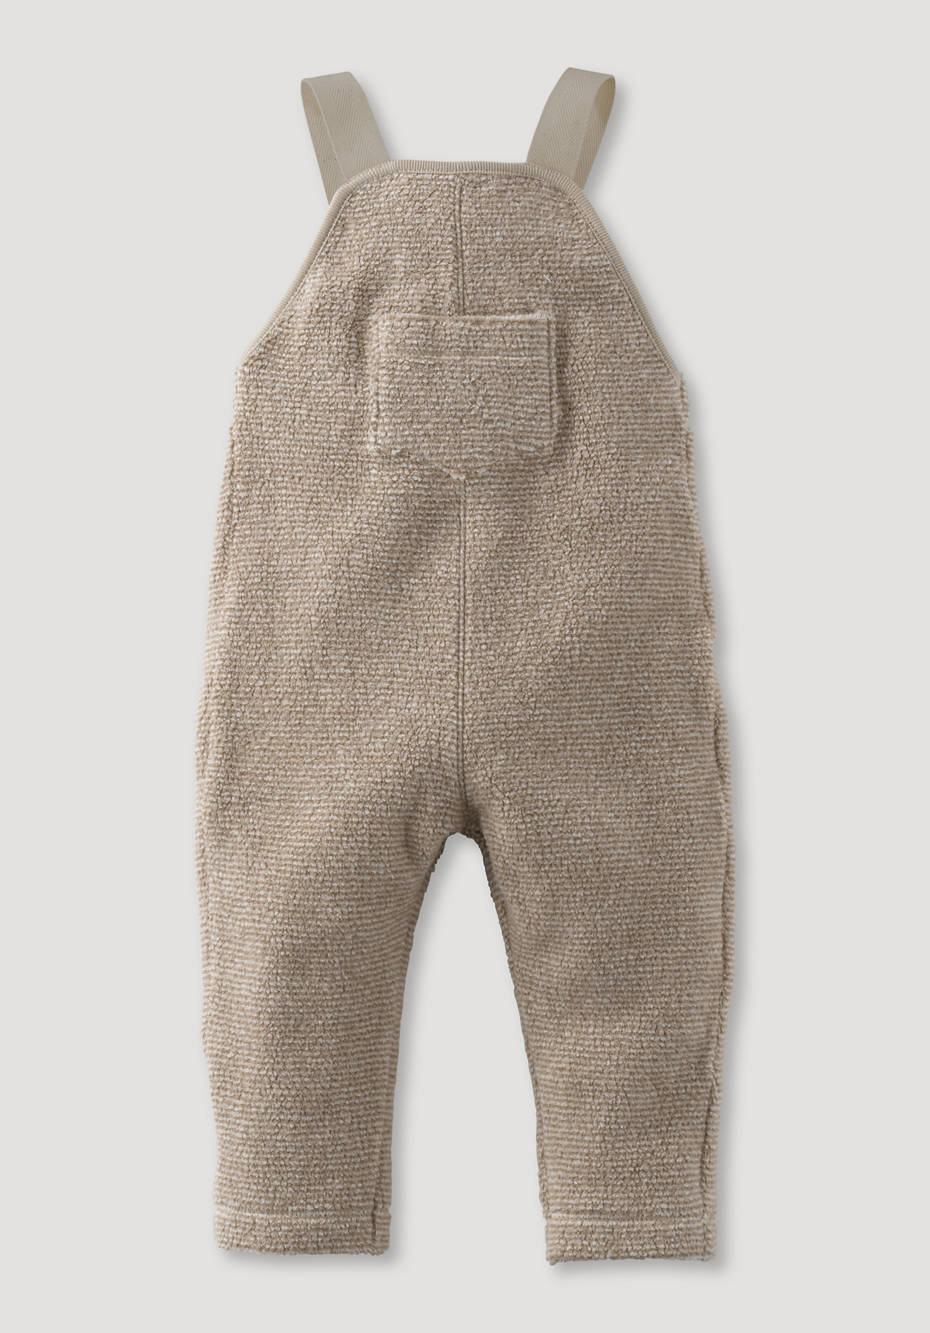 Banded fleece dungarees made of pure organic cotton